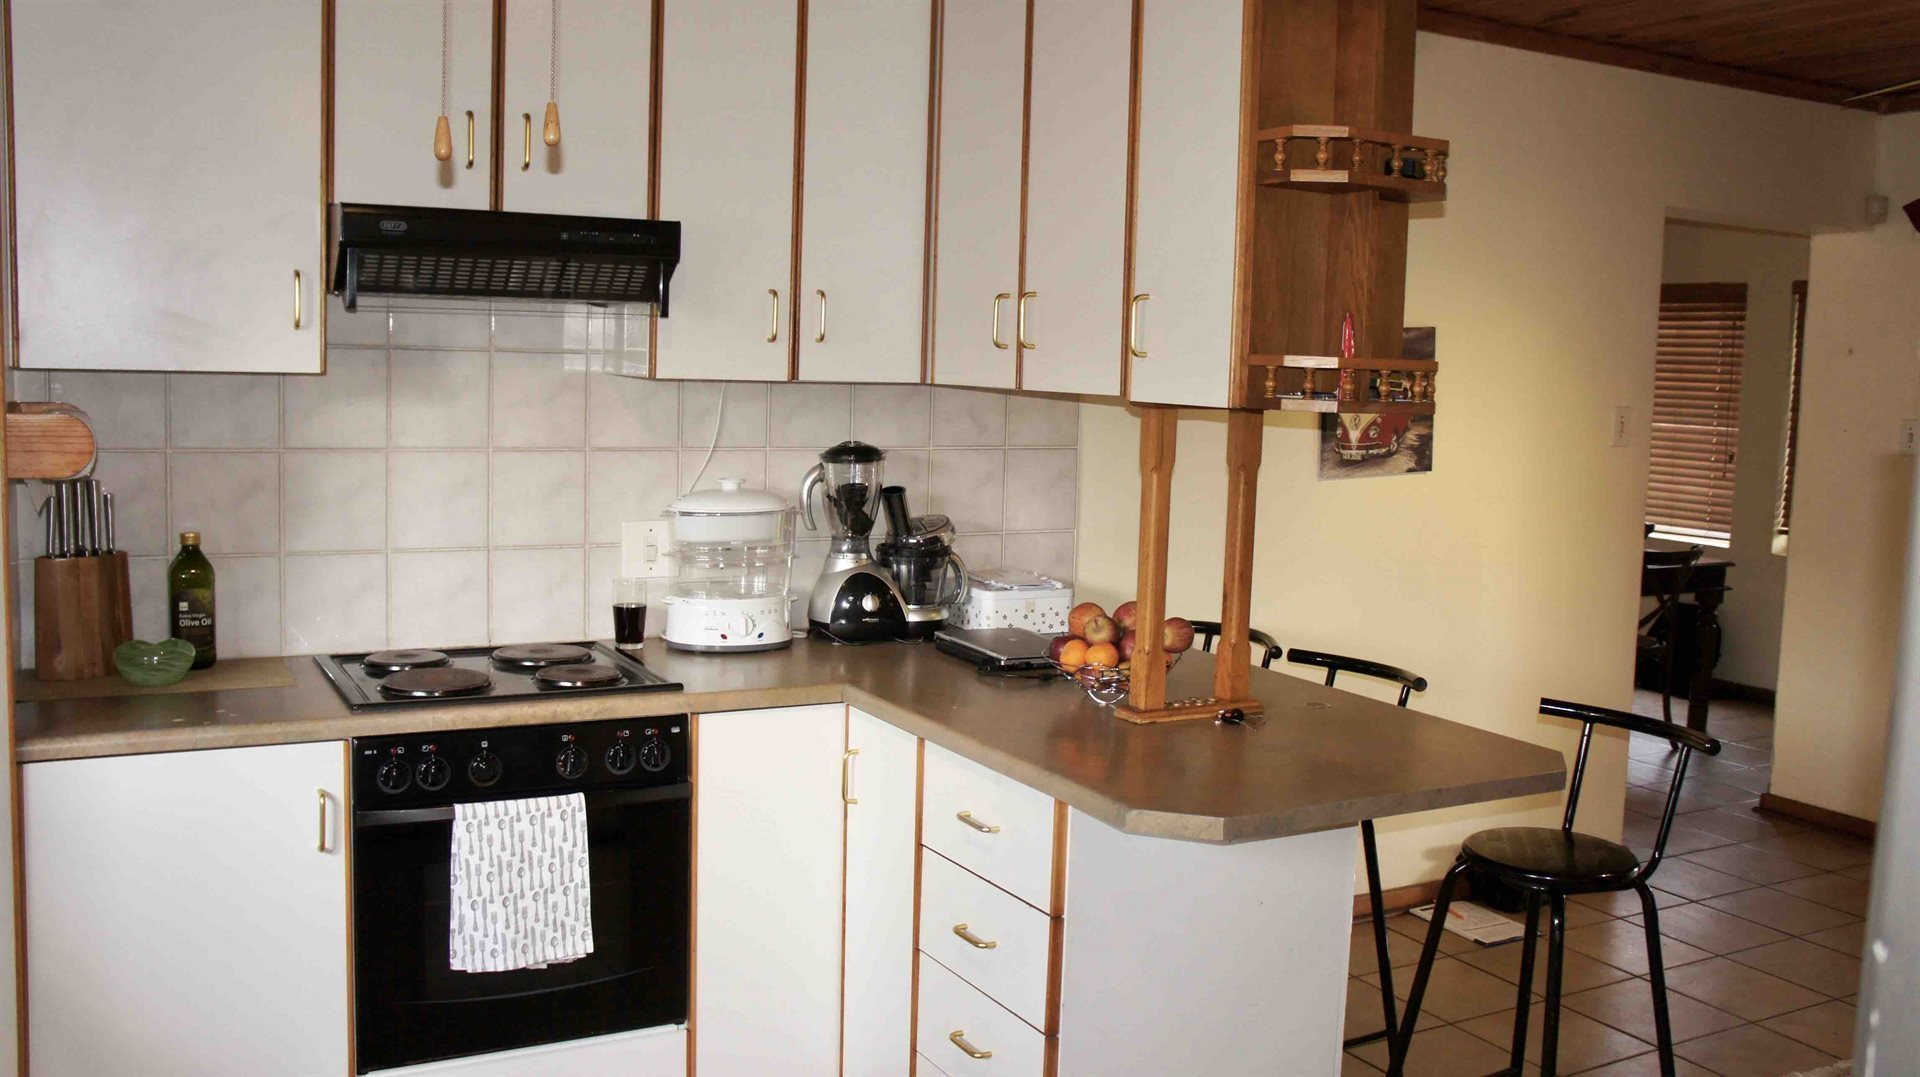 Meer En See property for sale. Ref No: 13538155. Picture no 4